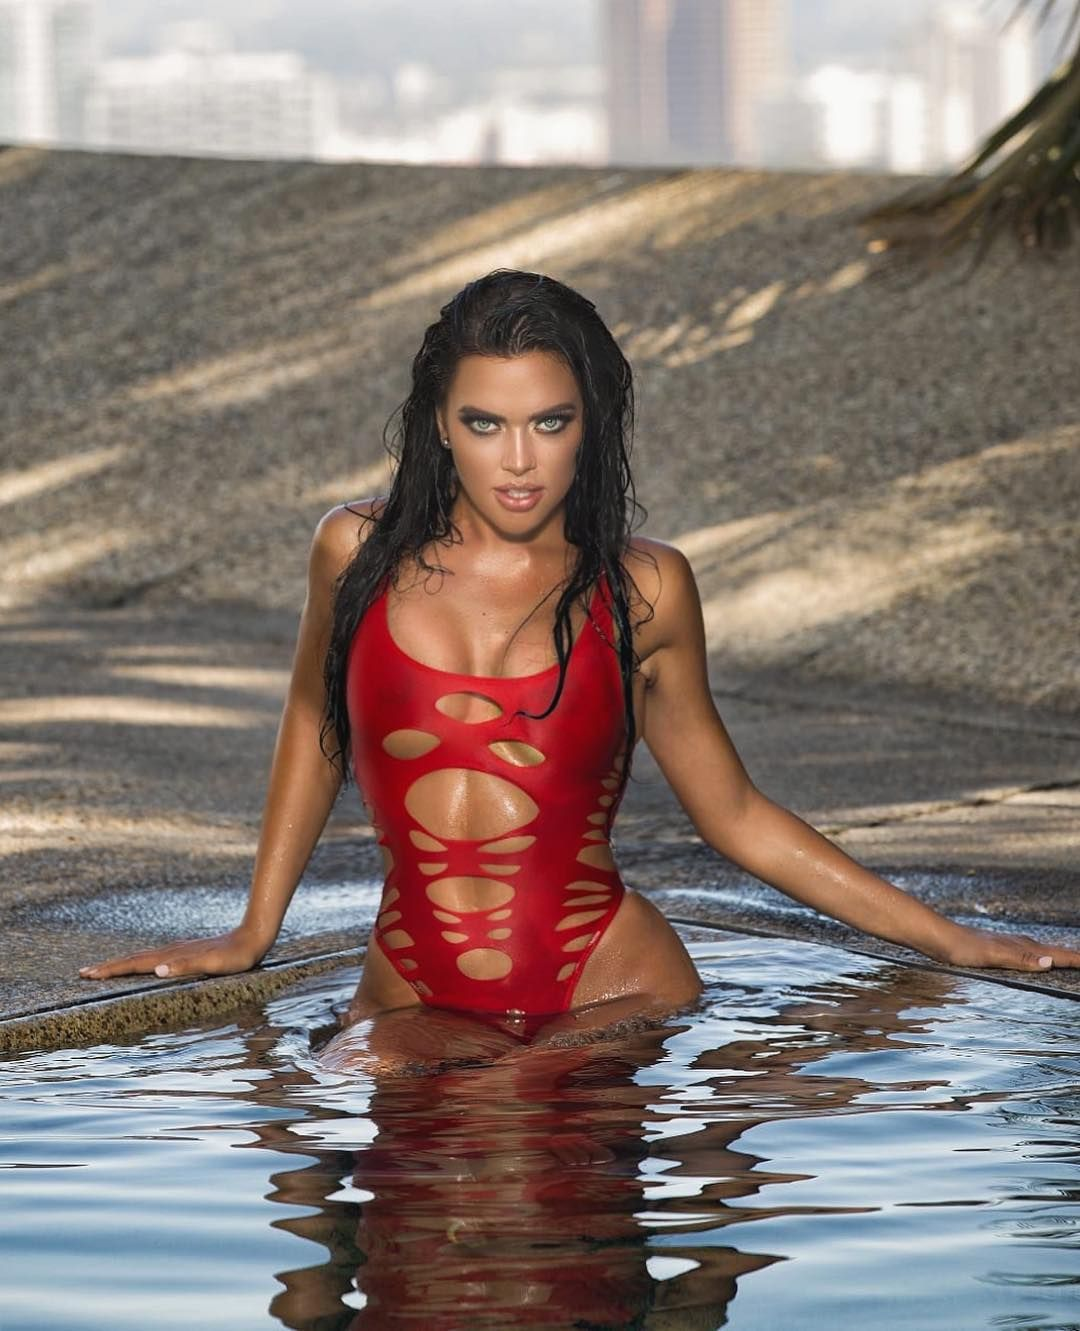 Kelsie Jean Smeby Hot Red Swimsuit Photoshoots - Kelsie Jean Smeby Hot Red Swimsuit Photoshoots